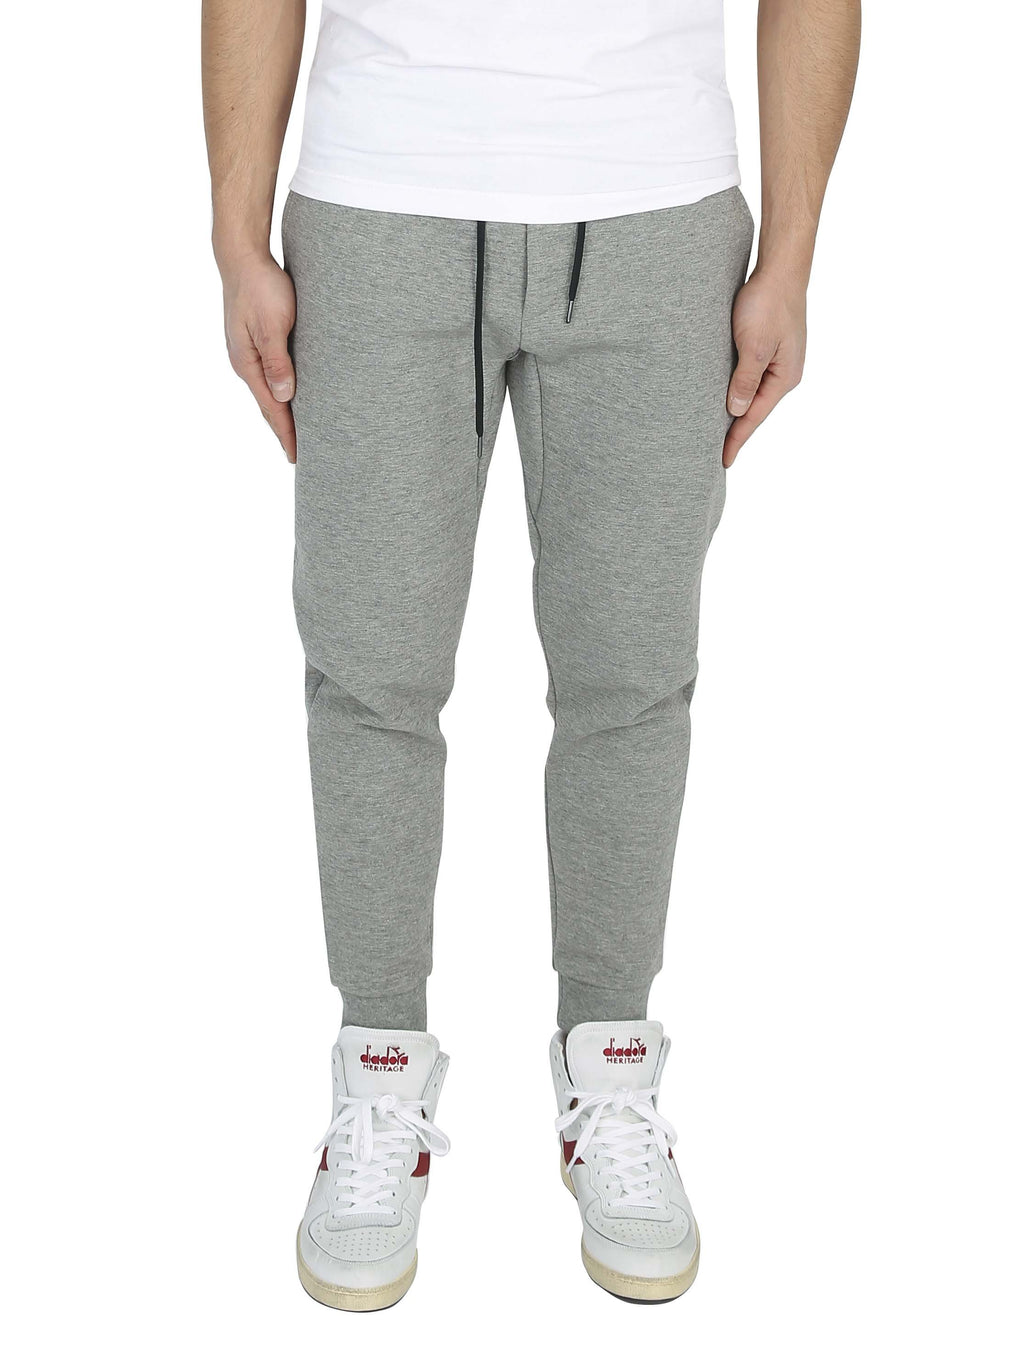 RALPH LAUREN Jogging trousers with embroidered logo